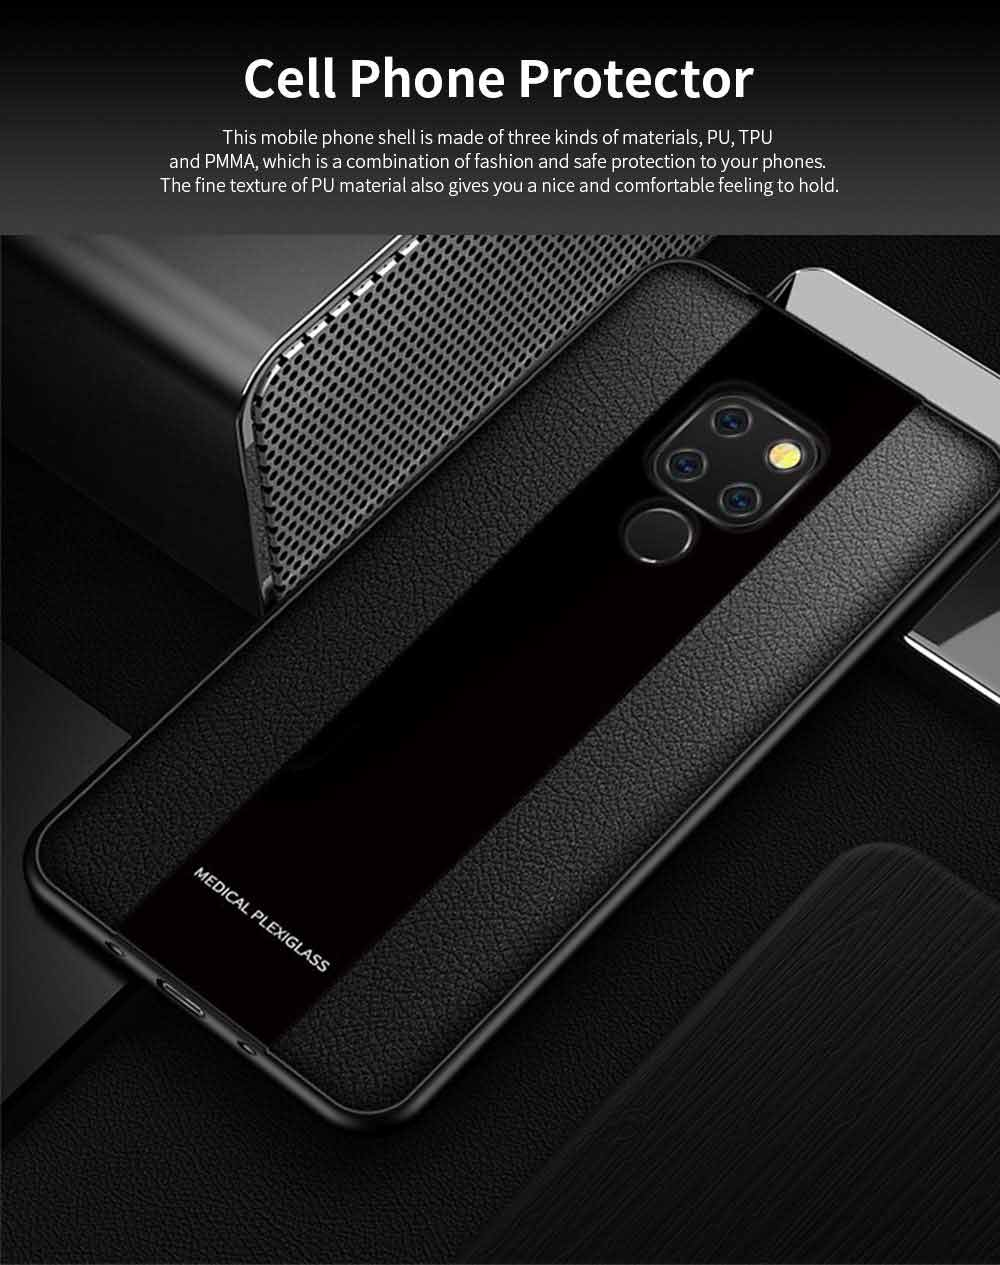 High Quality Fashionable Cell Phone Protector for Huawei, iPhone, Samsung, Stitching PU Texture Shatter-resistant Mobile Phone Shell 0